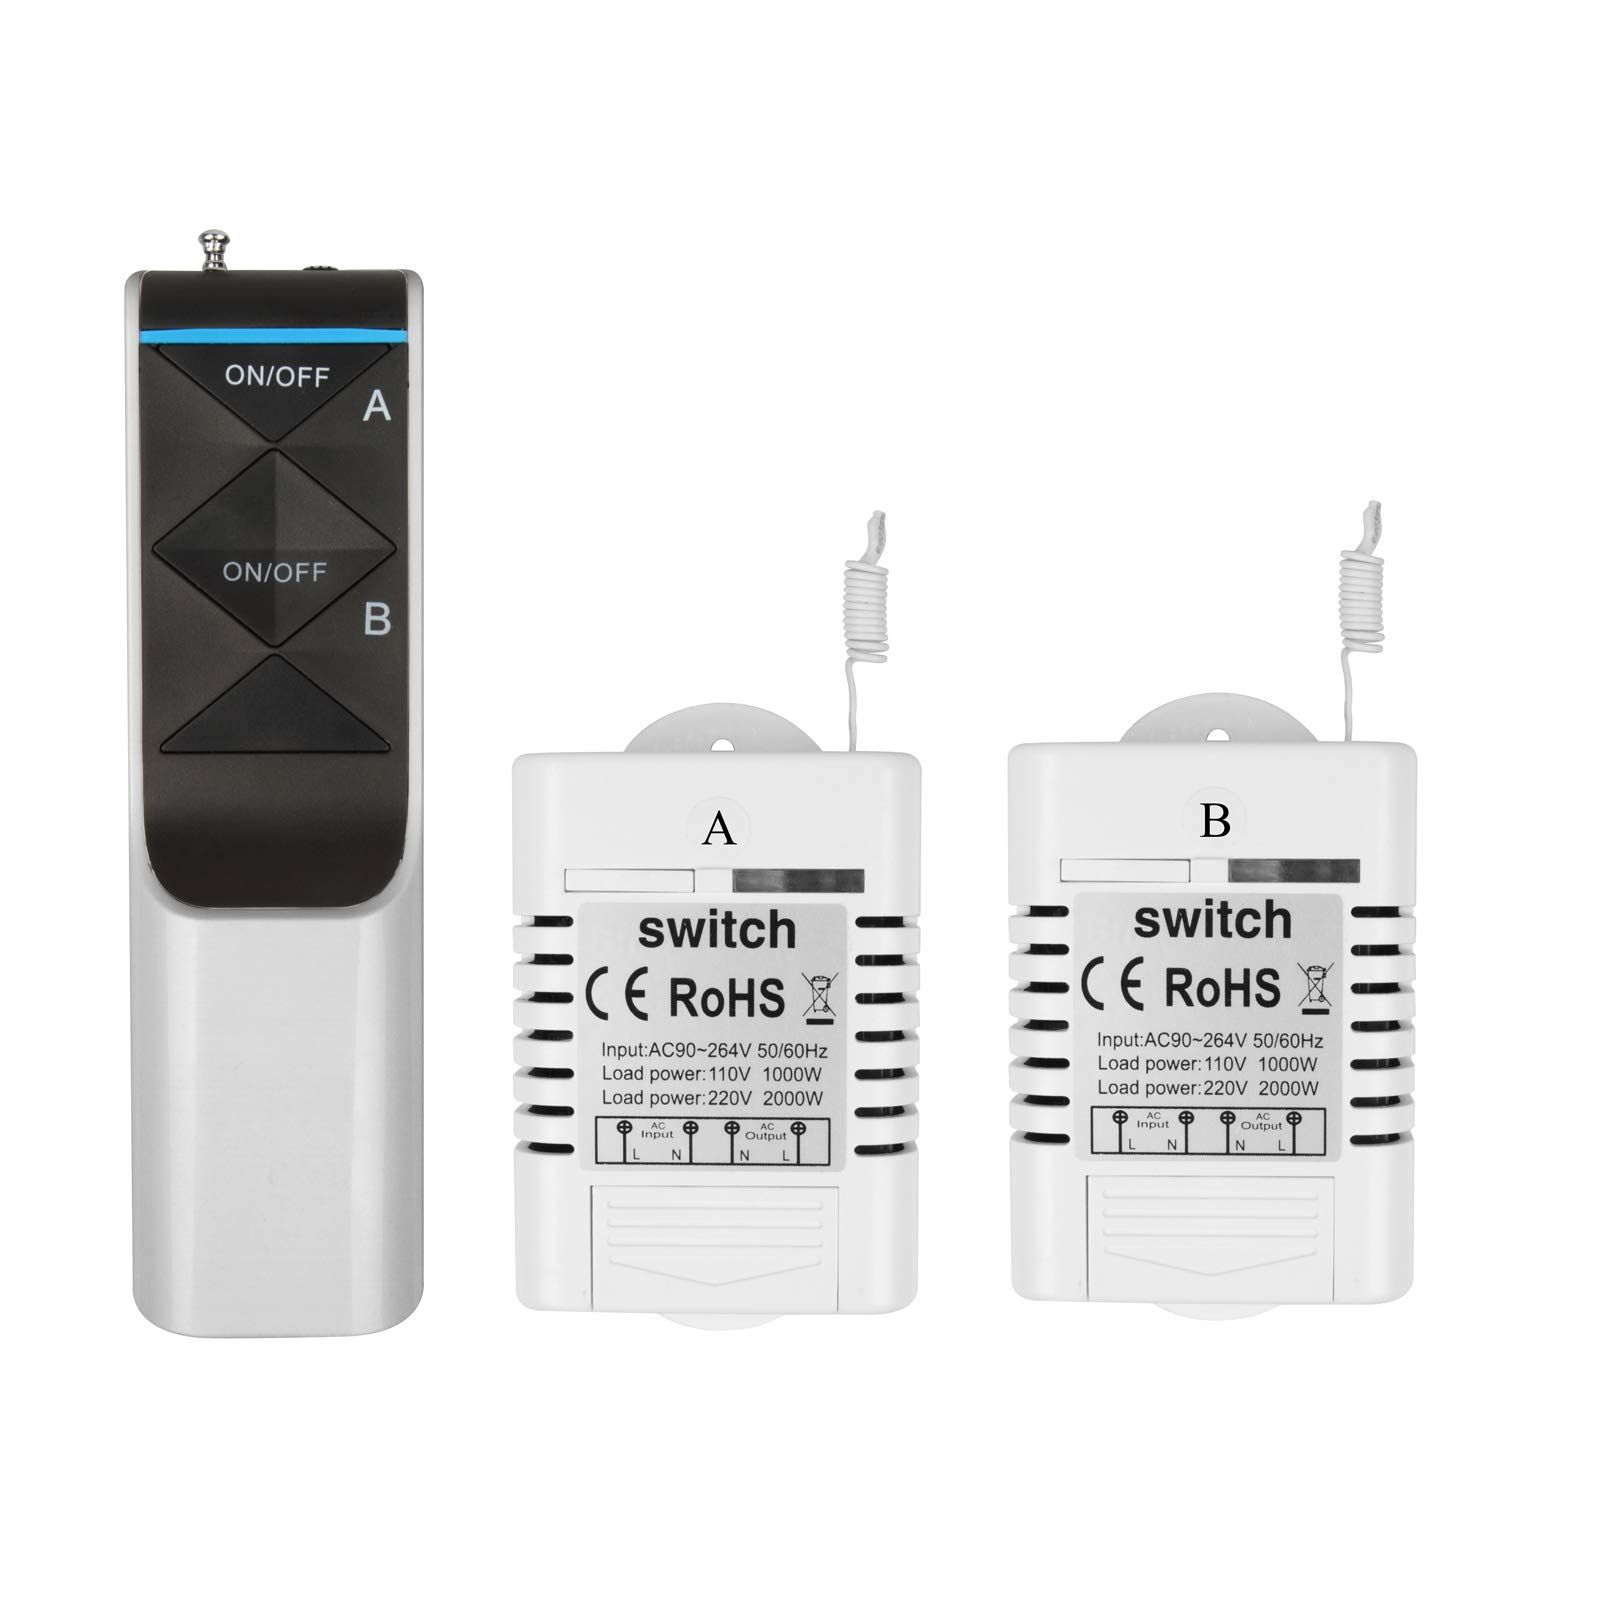 medium resolution of heneng wireless light switch remote controlled no wiring no battery outdoor 1300 ft indoors 230 ft